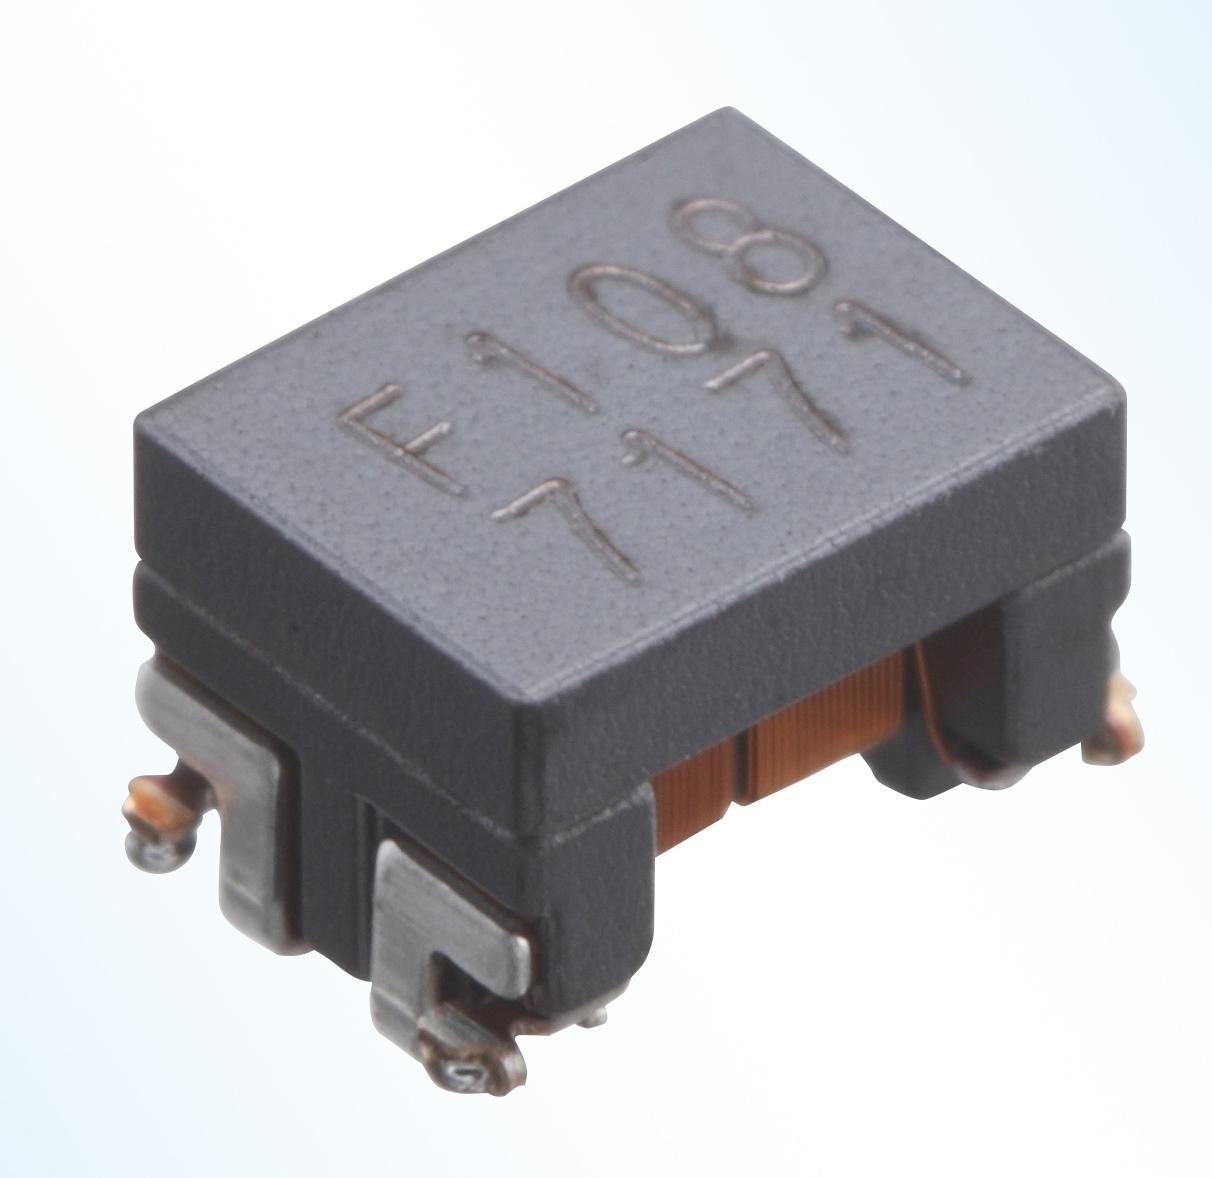 World's Smallest Common-Mode Choke for Automotive Ethernet